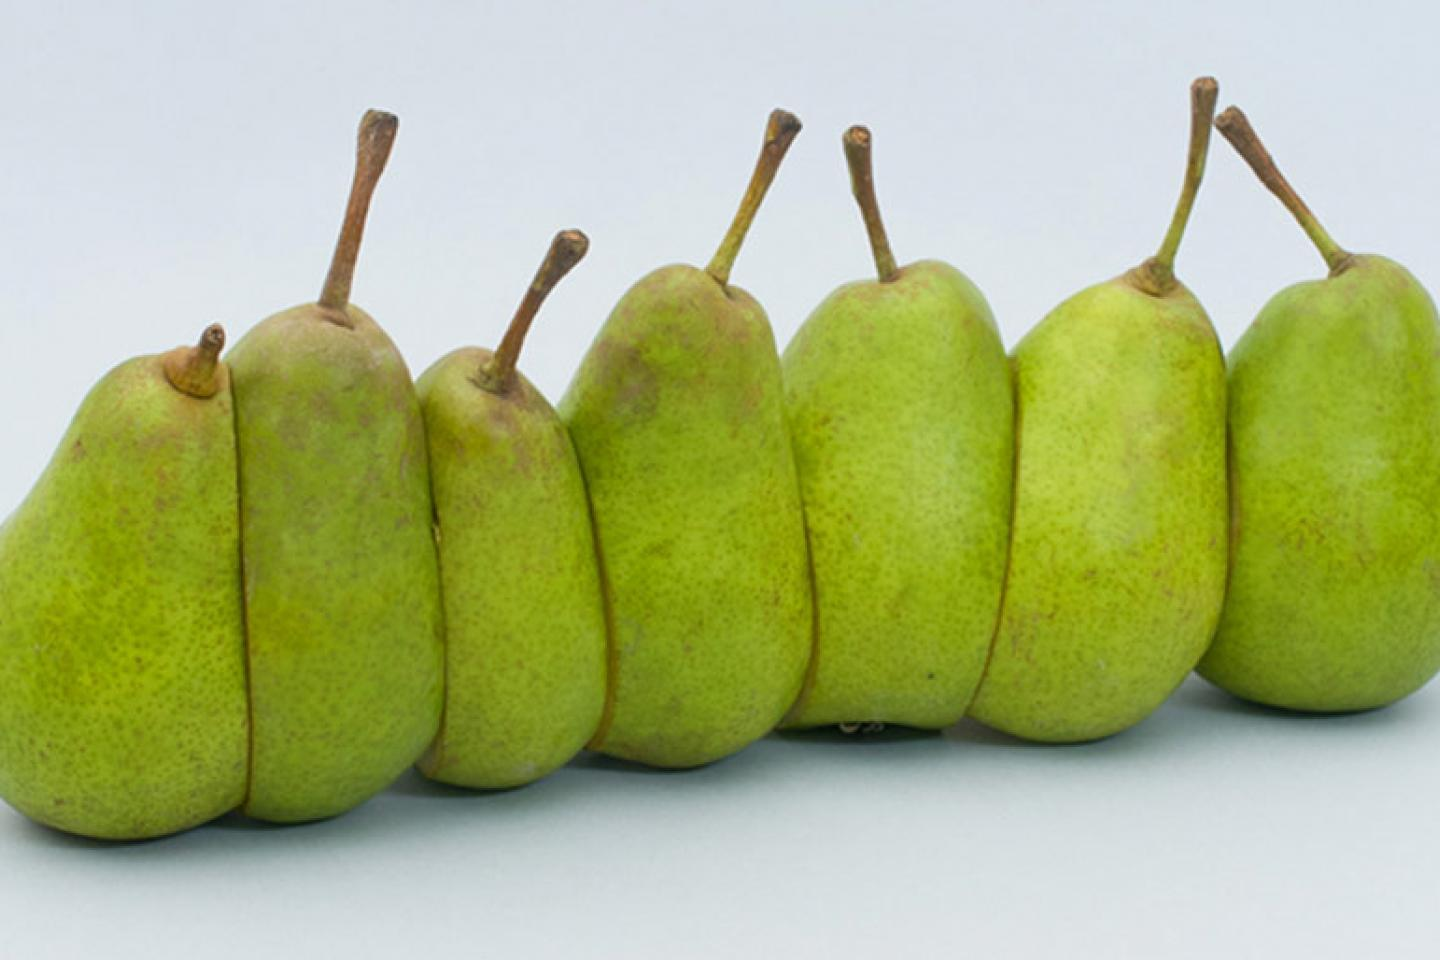 Pears from Florent Tanet